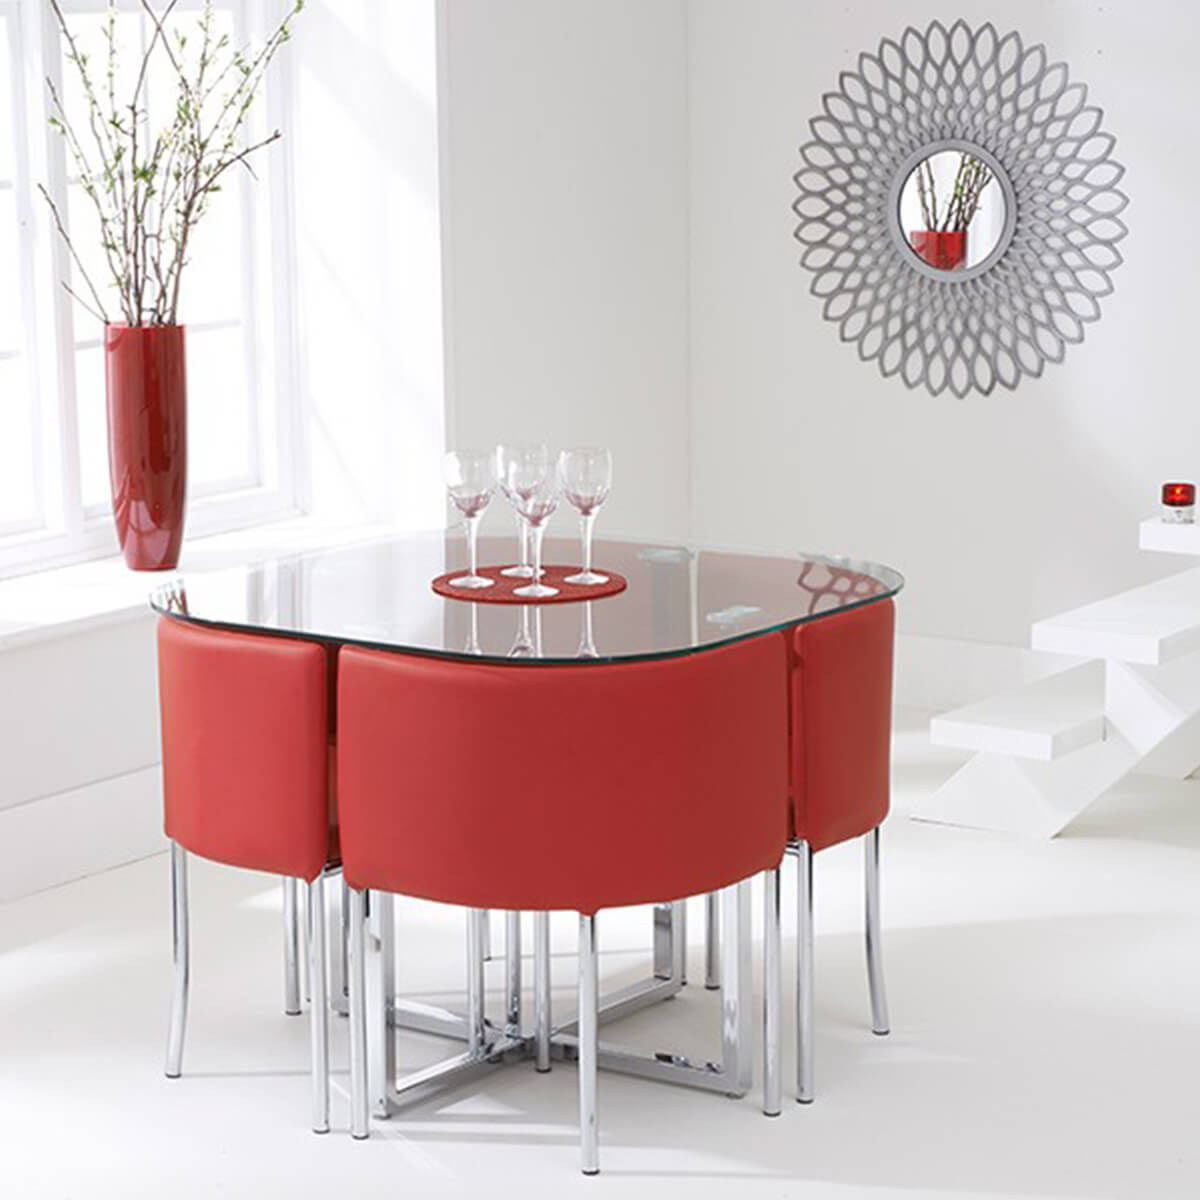 Abingdon Stowaway Dining Set 4 Seater Glass With 4 Chairs Red